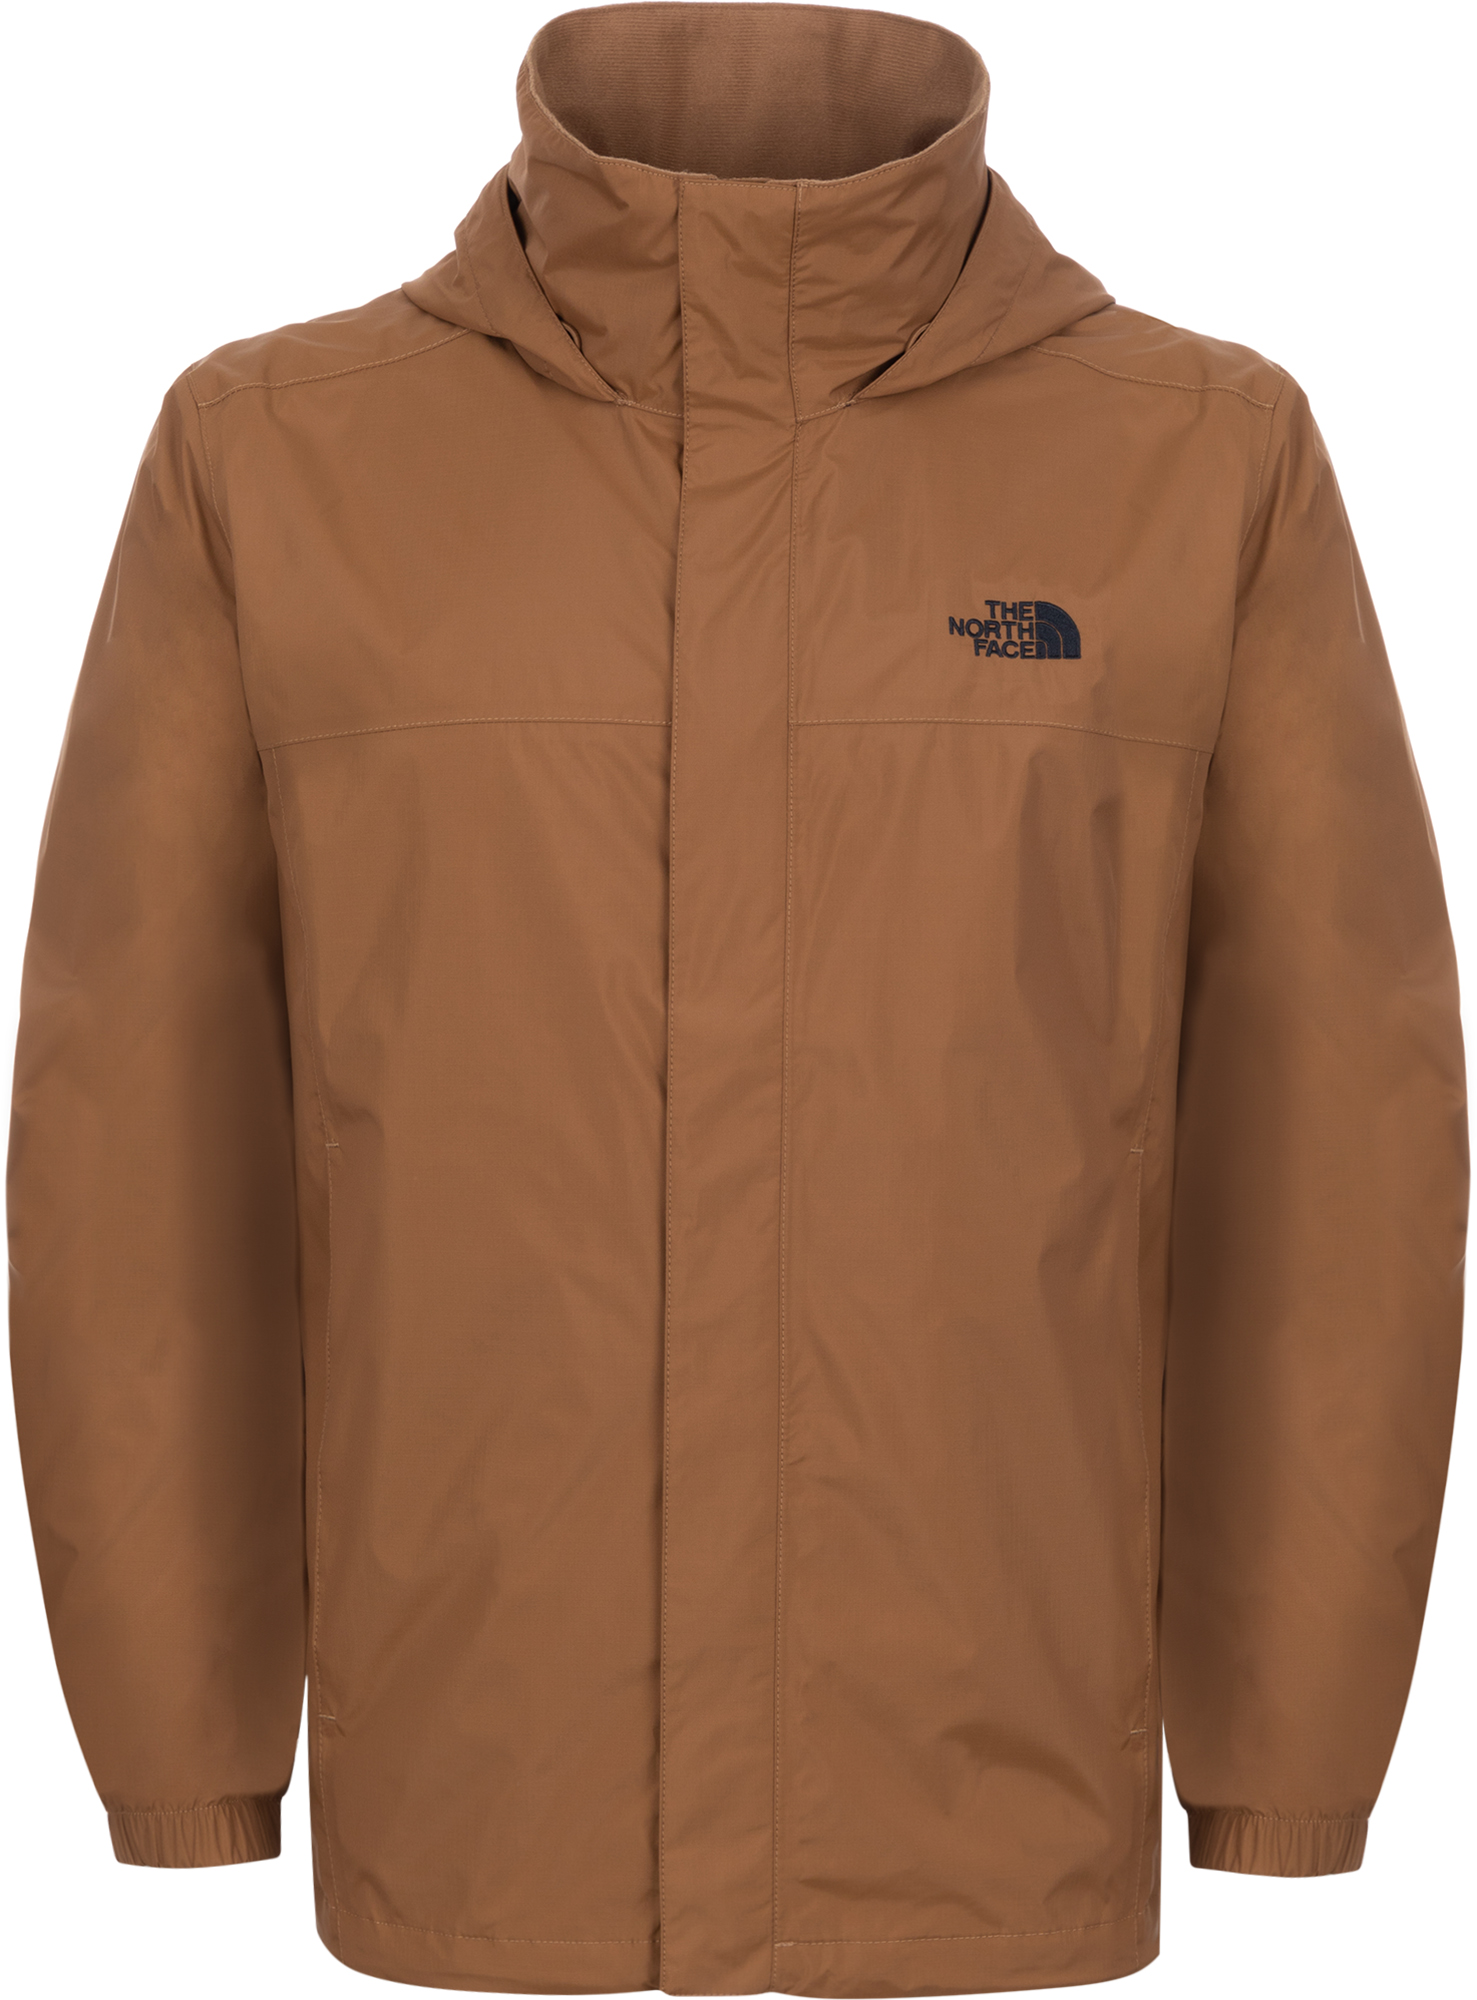 The North Face Ветровка мужская The North Face Resolve 2, размер 52 цена